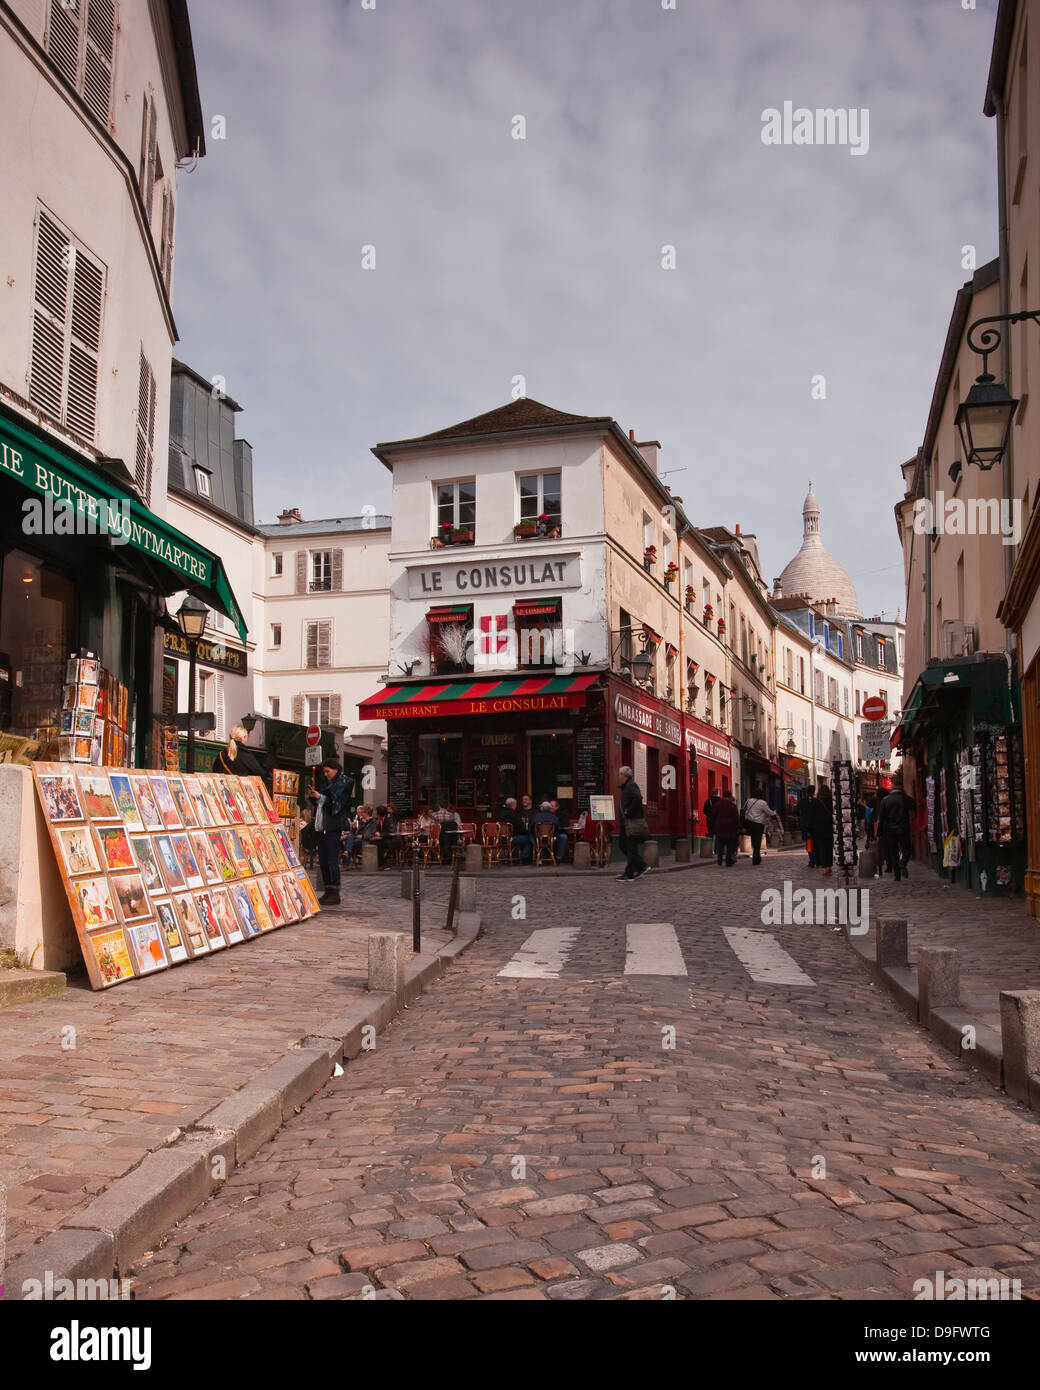 The streets of Montmartre, Paris, France Stock Photo